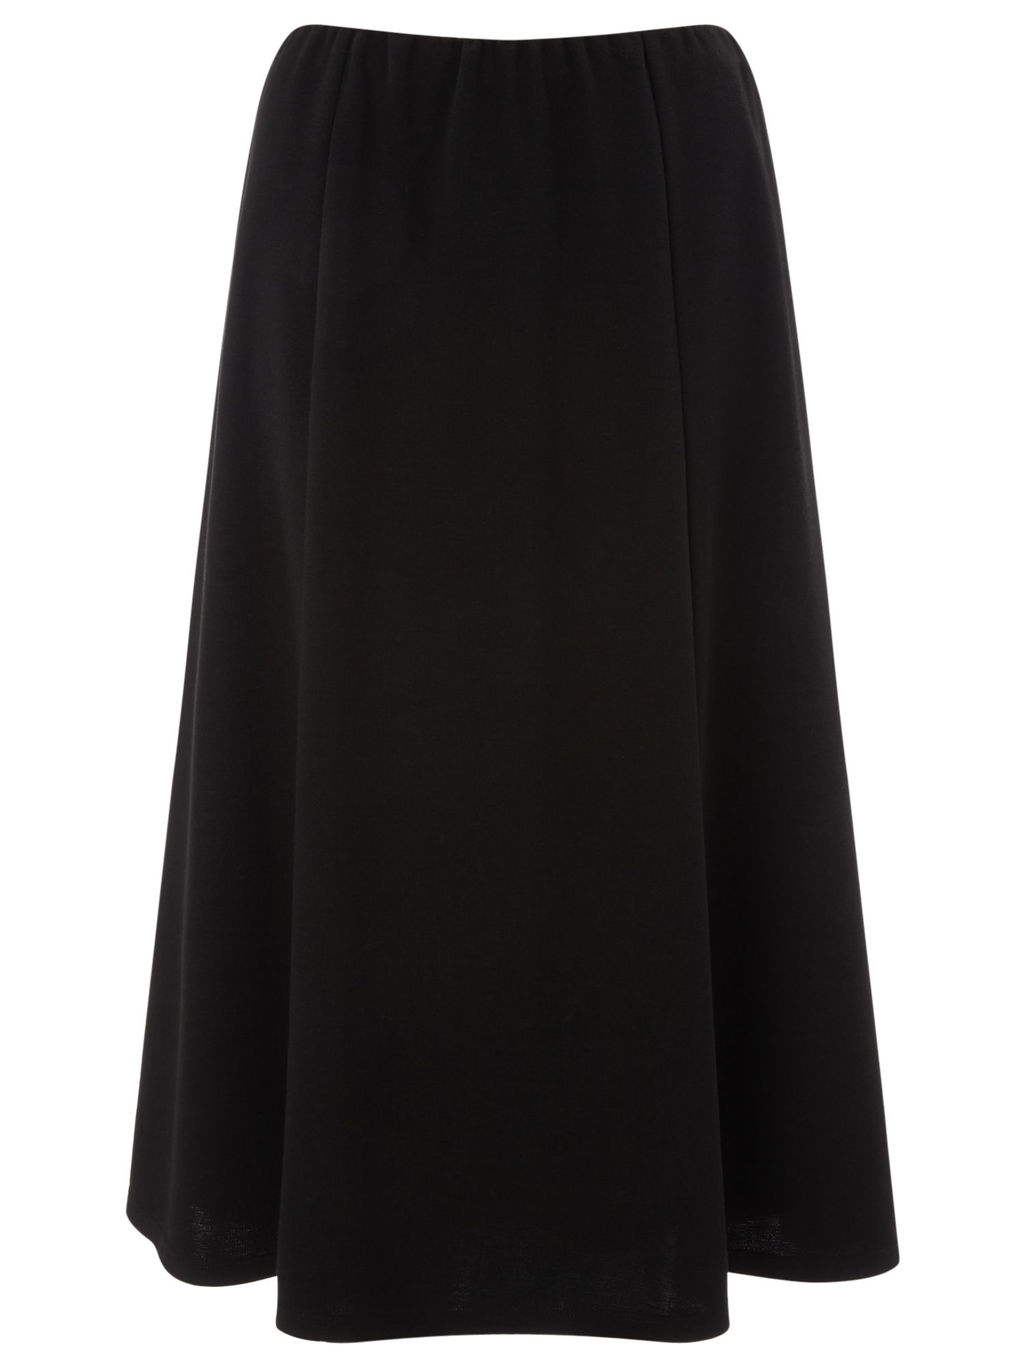 Pull On Ponte Skirt Short - pattern: plain; style: full/prom skirt; fit: loose/voluminous; waist: mid/regular rise; predominant colour: black; occasions: casual, creative work; length: on the knee; fibres: polyester/polyamide - stretch; pattern type: fabric; texture group: jersey - stretchy/drapey; season: s/s 2016